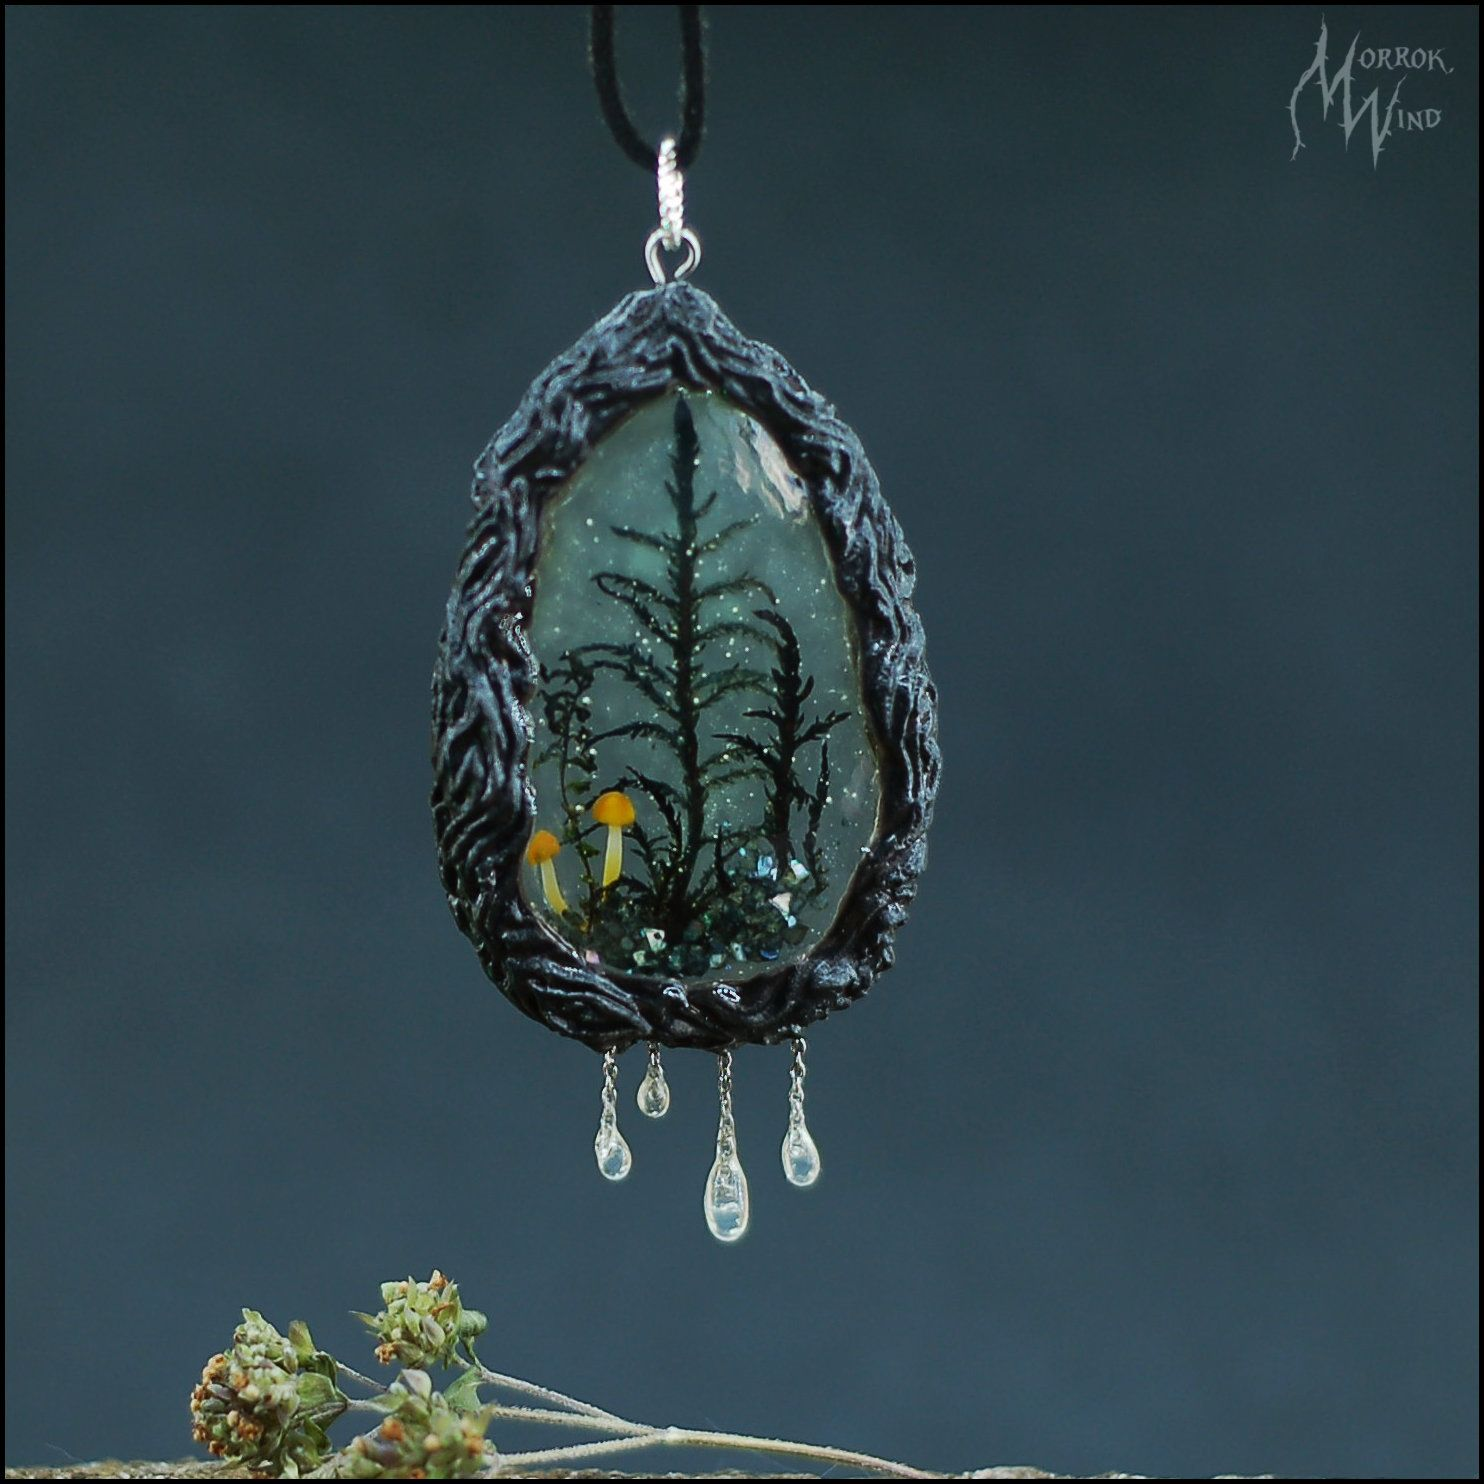 Mysterious Necklace Moss Resin Mushroom Dark Wood Misty